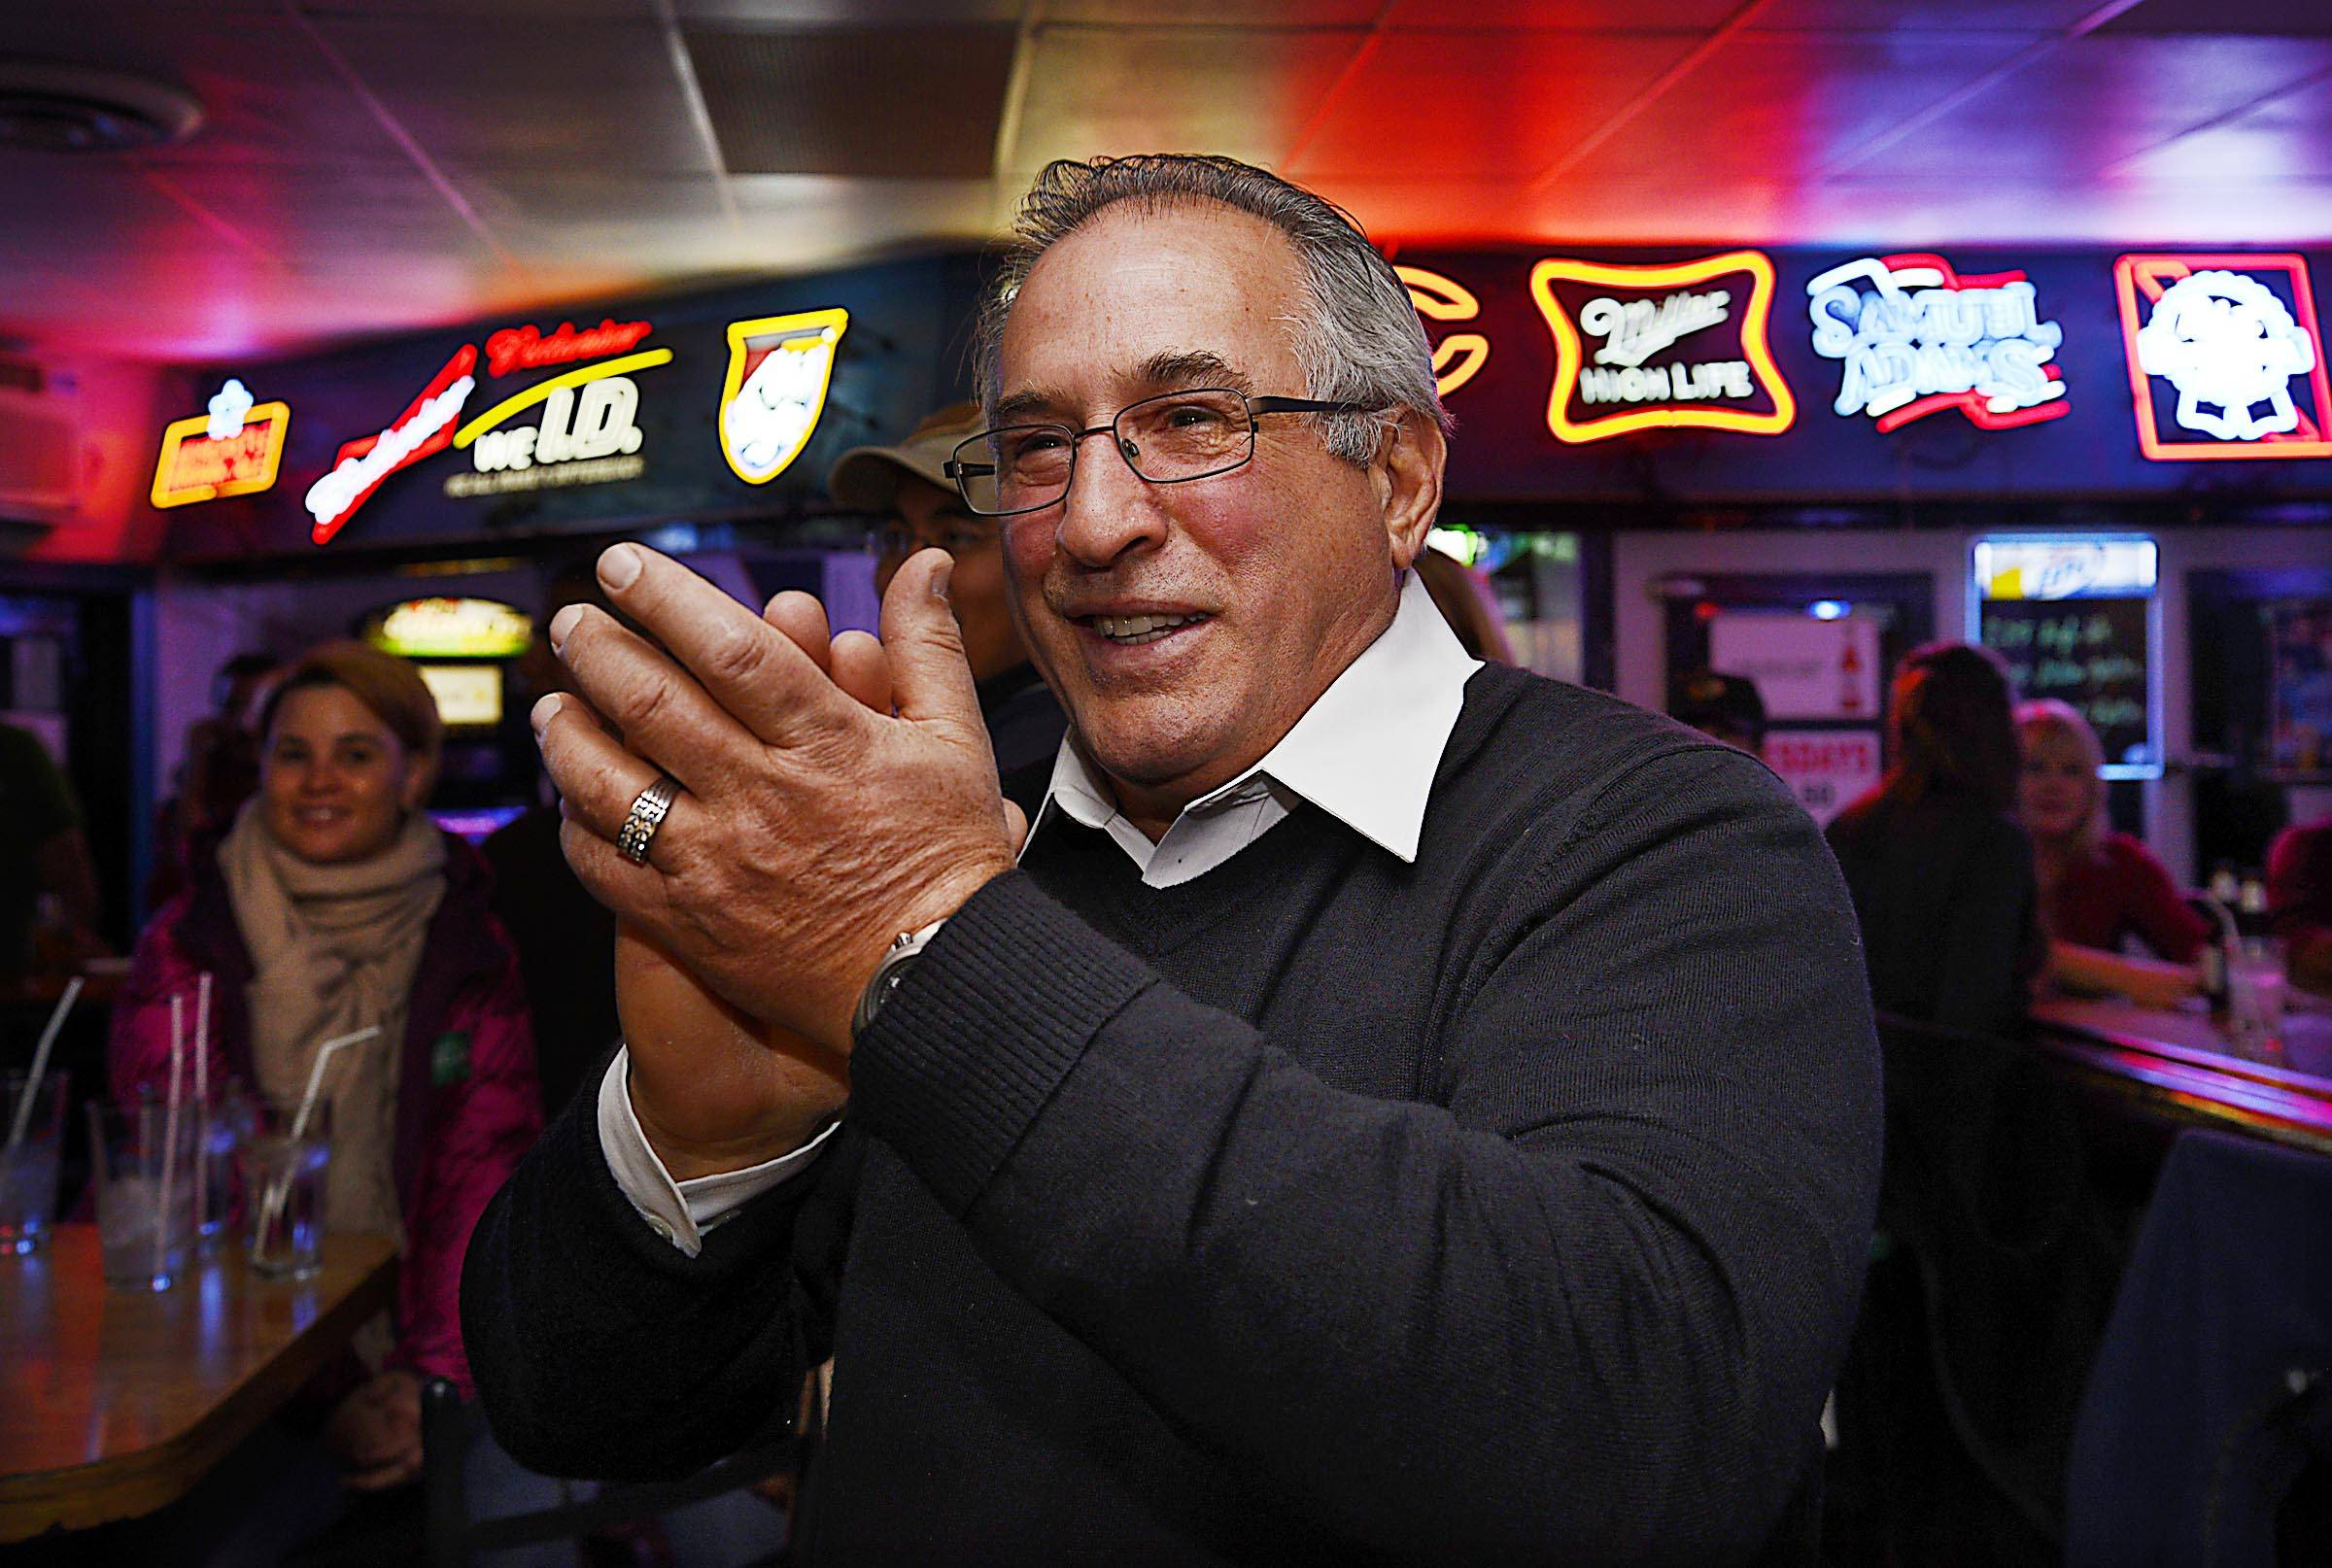 Democratic incumbent State Rep. Marty Moylan applauds Election Night results at The Bar in Des Plaines that showed him defeating Republican challenger Mel Thillens.